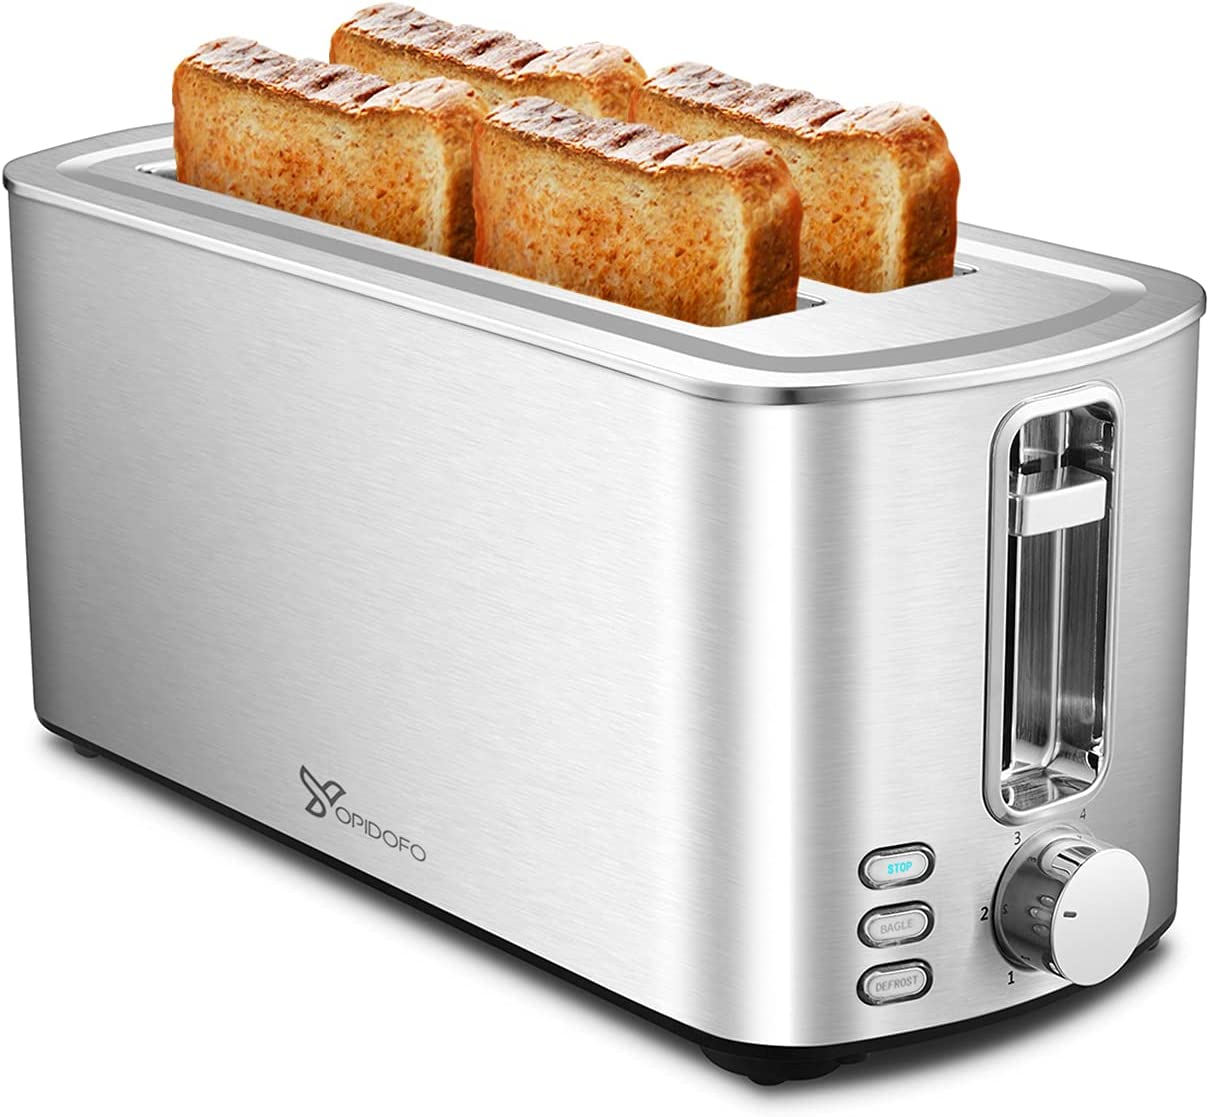 Kansas City Mall YOPIDOFO Toaster 4 Slice Stainless S Shade 6 Attention brand Steel with